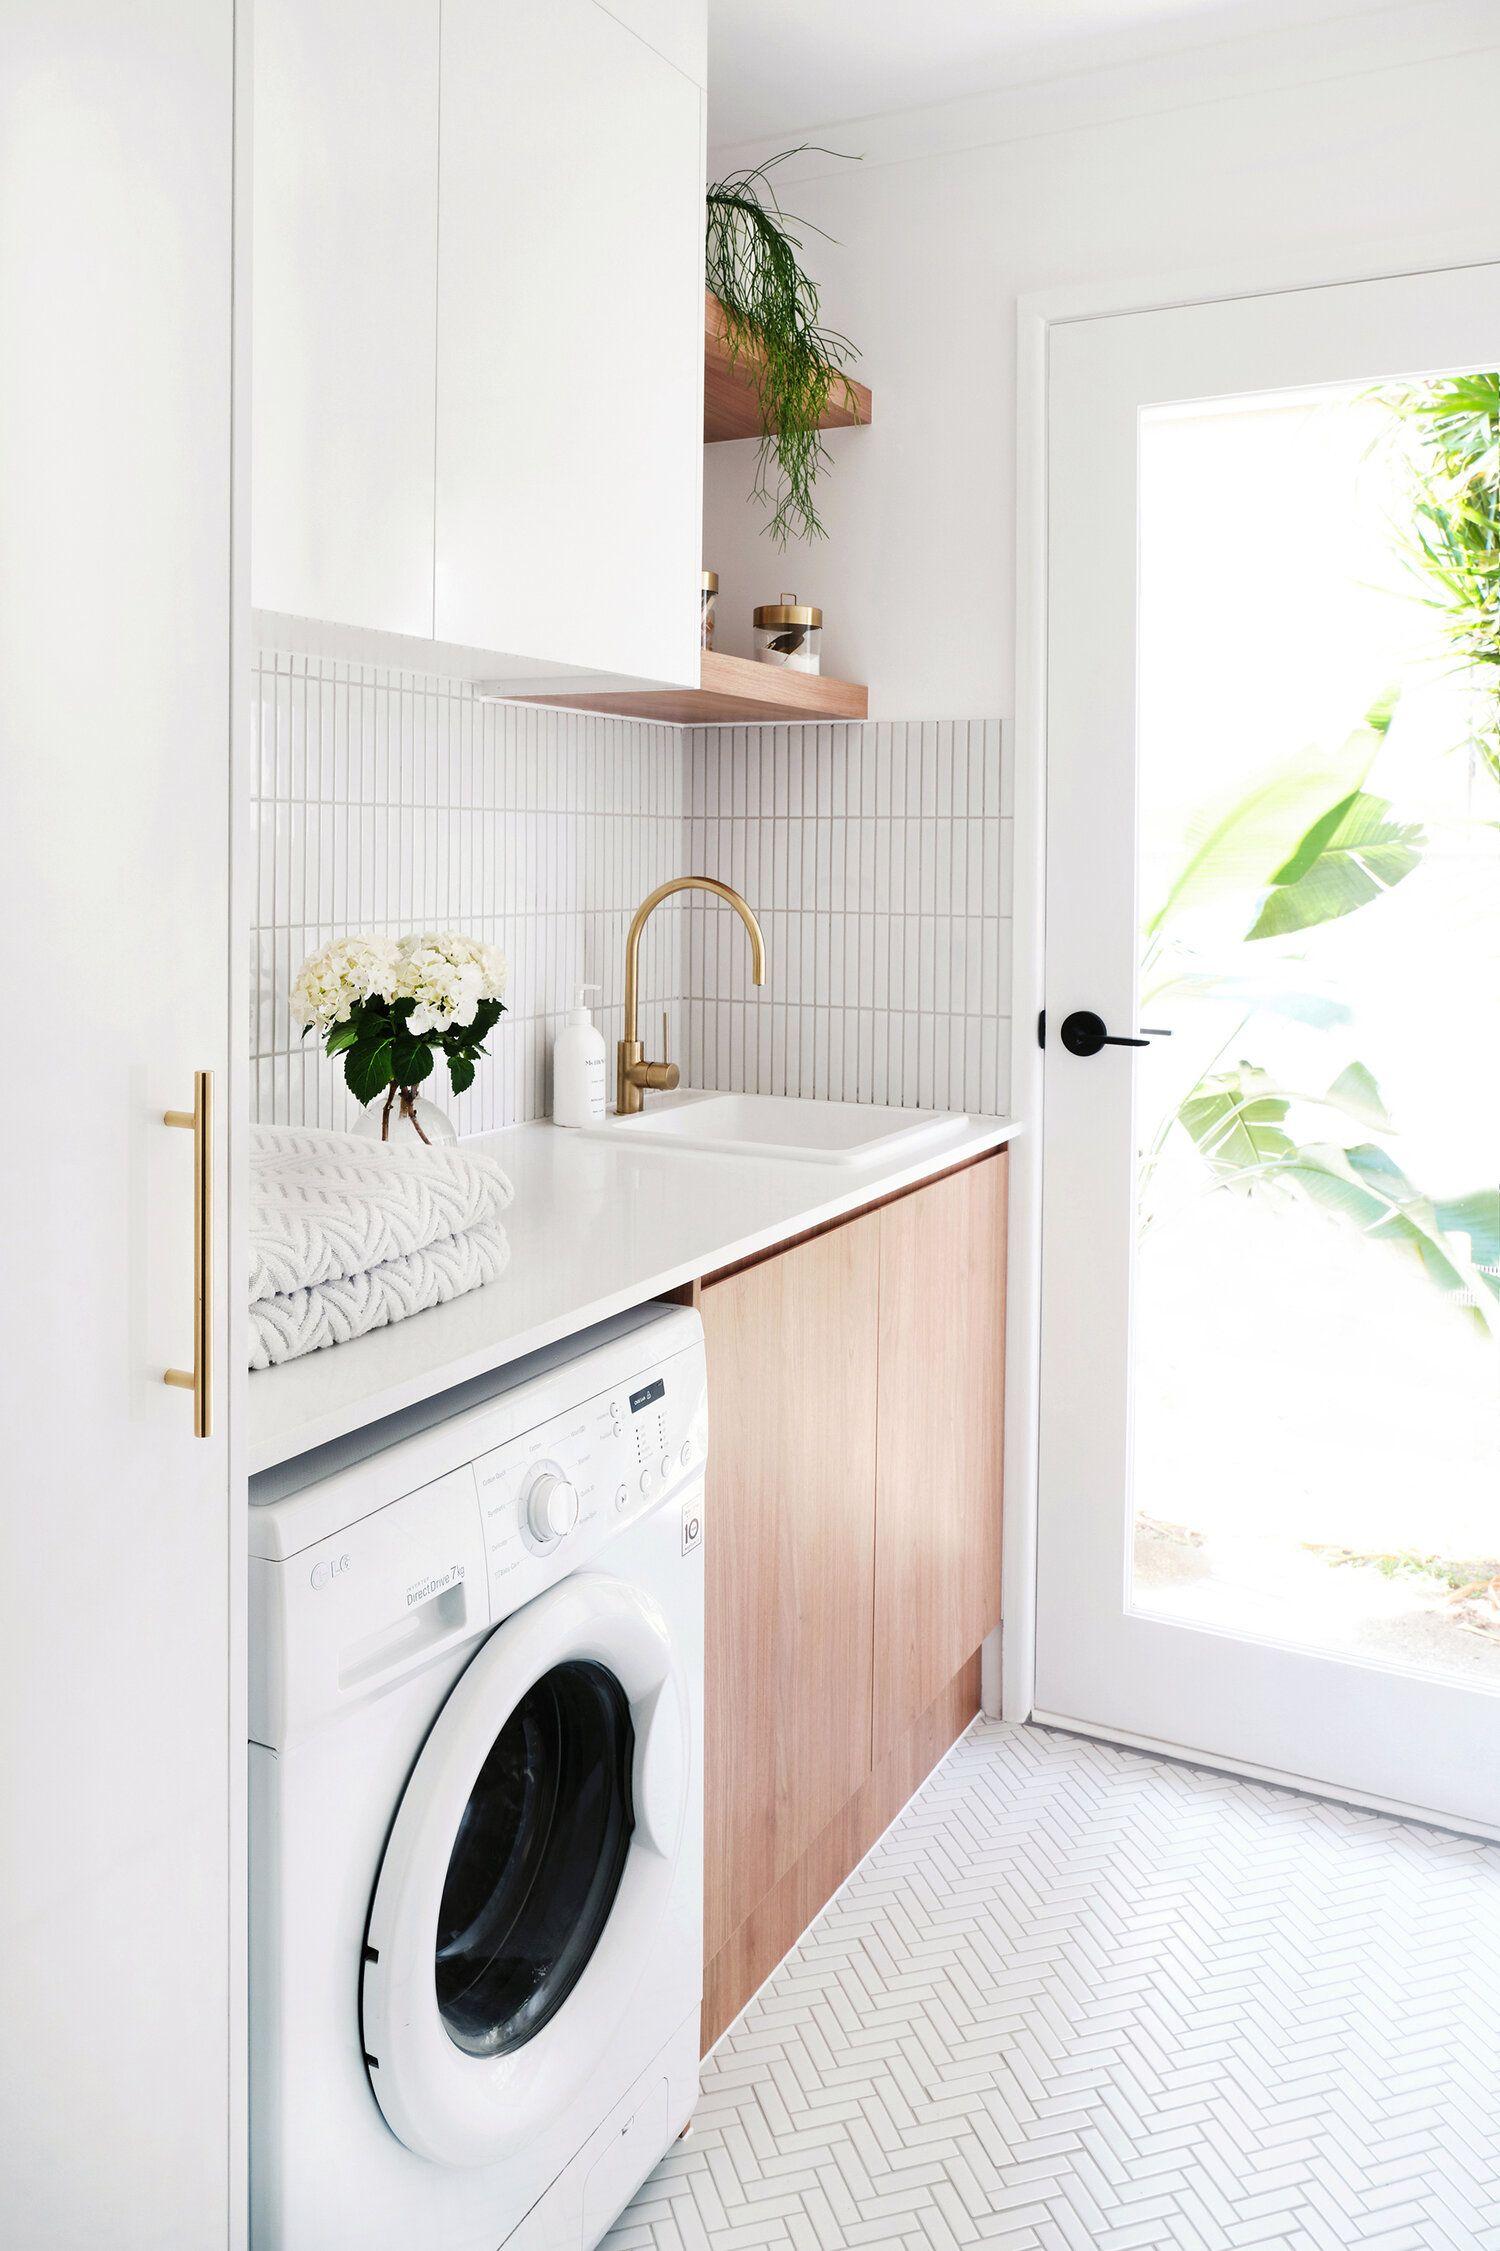 laundry room, white floor tiles, white wall tiles, white cabinet, wooden floating shelves, wooden cabinet, white top, white wall, white washing machine